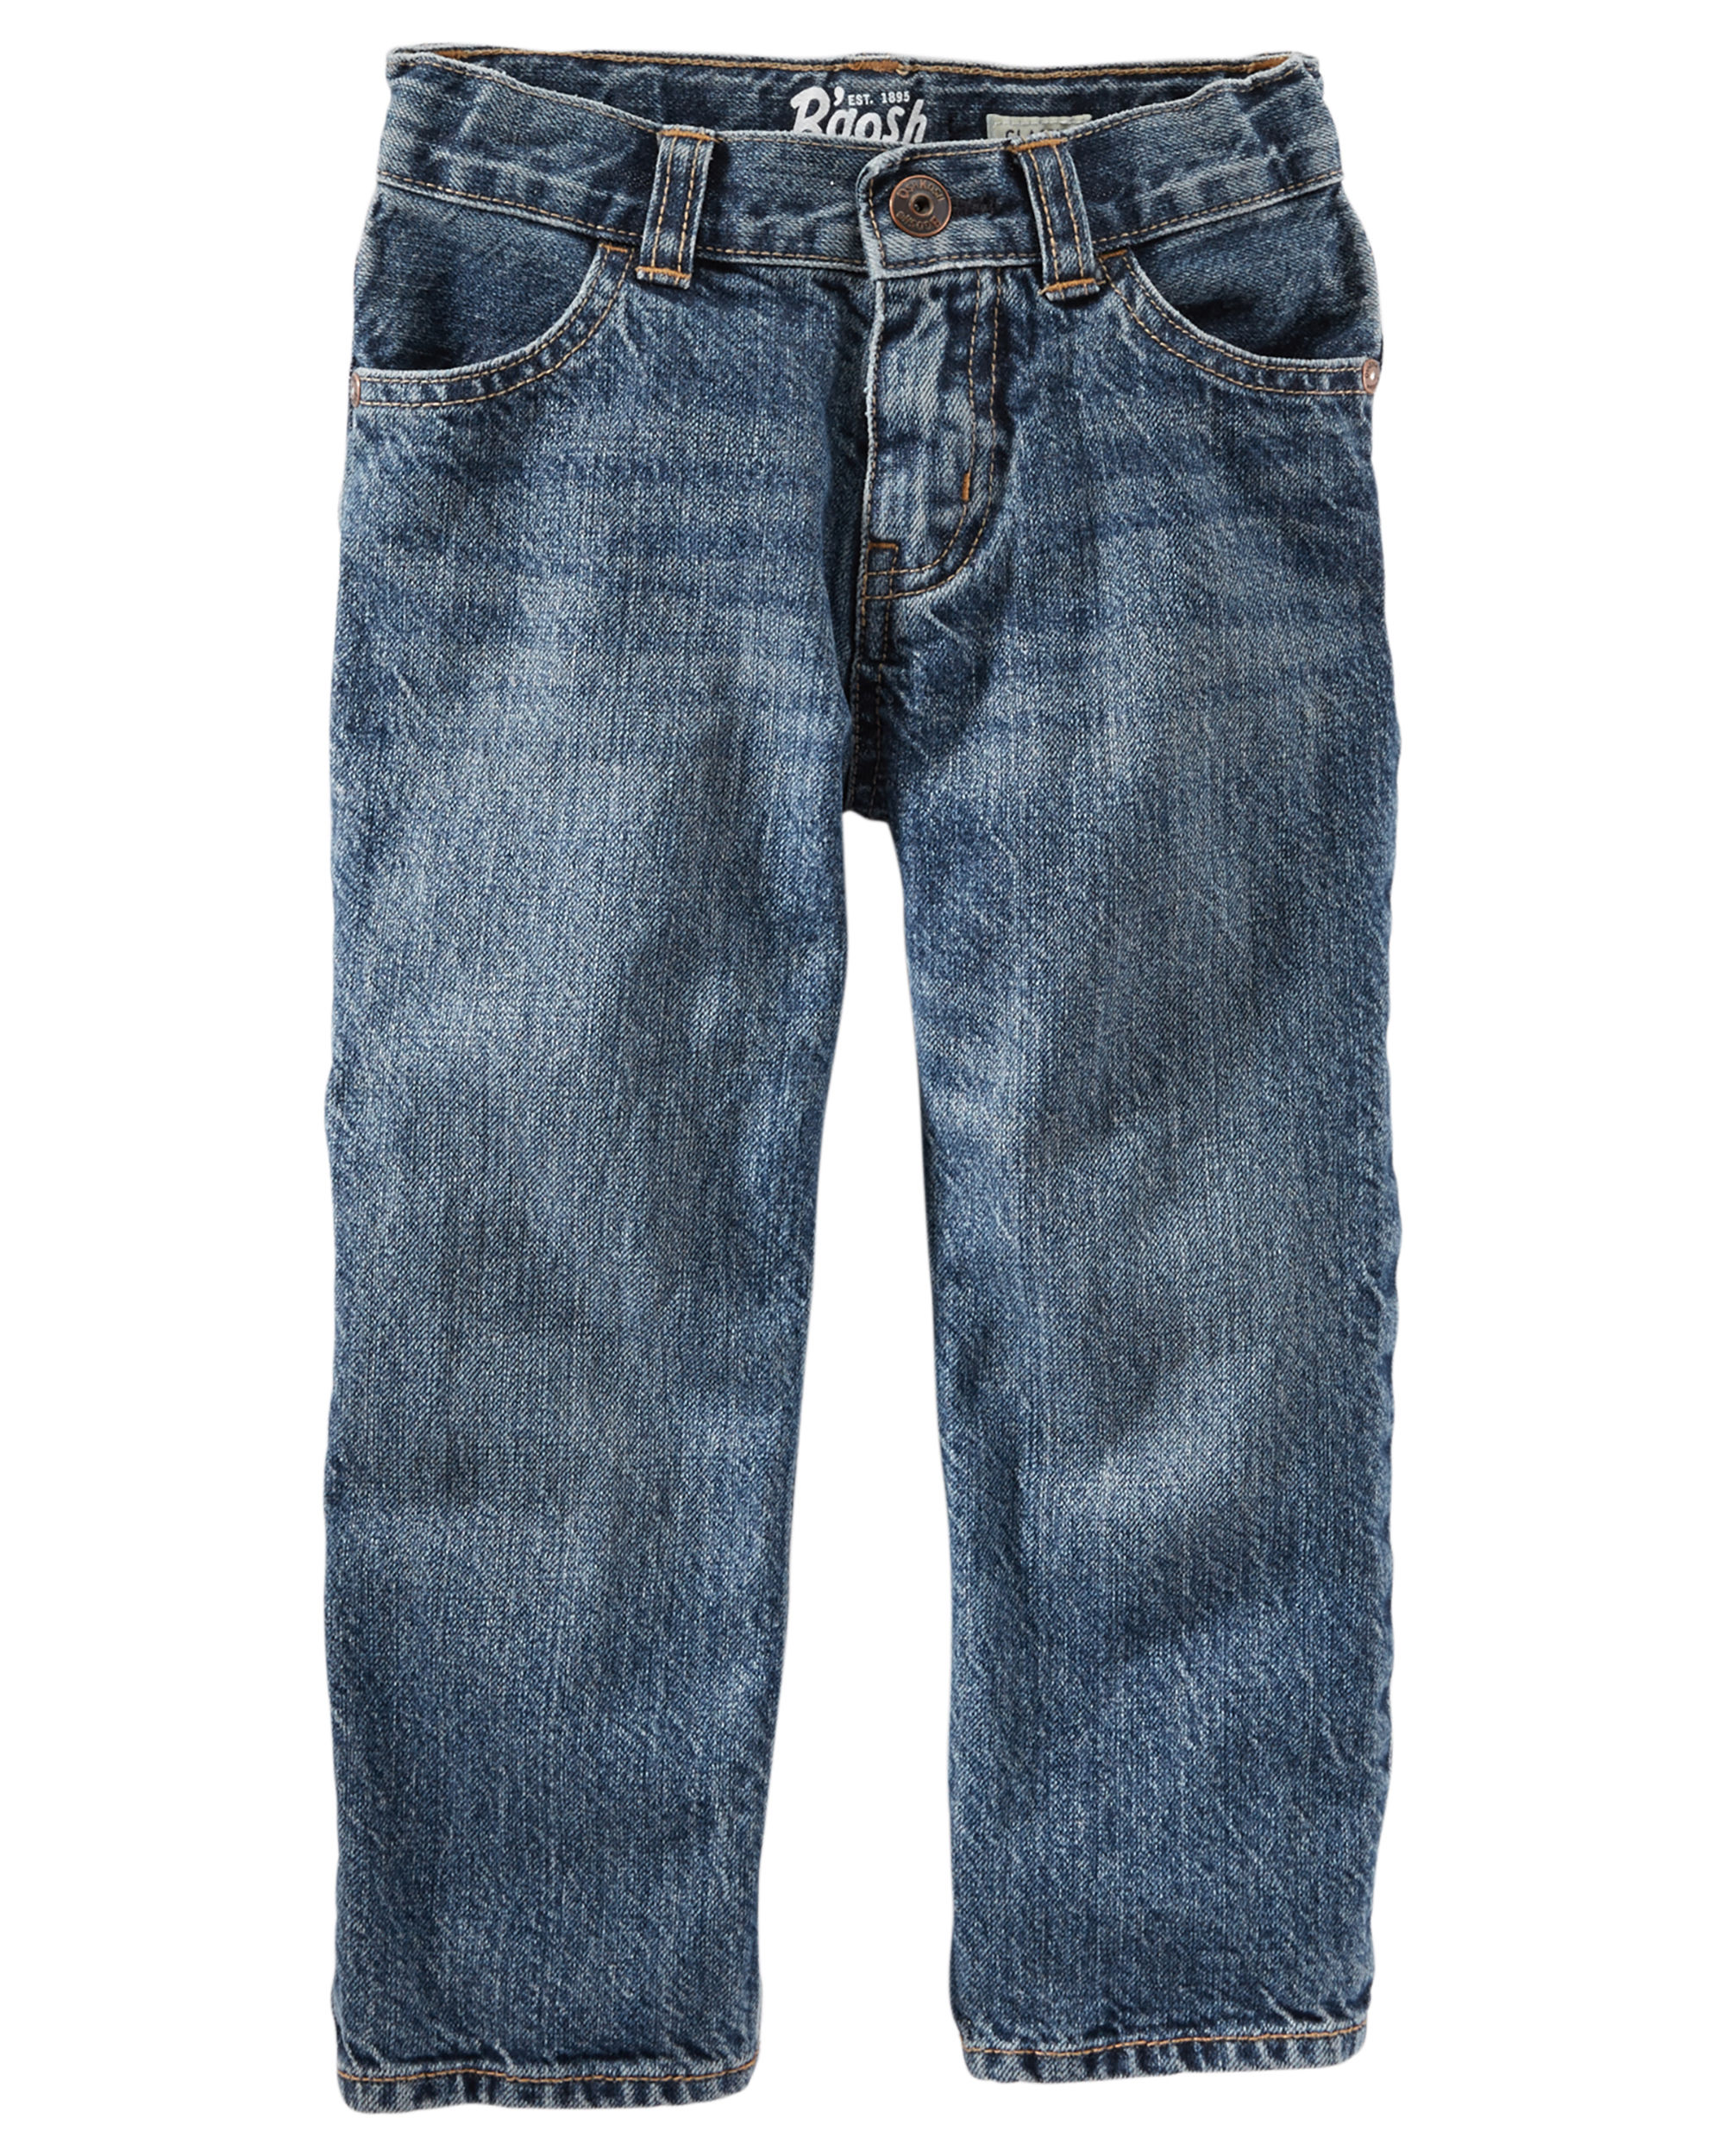 OshKosh B'gosh Boys Classic Fit Jeans- Tumbled Medium Wash